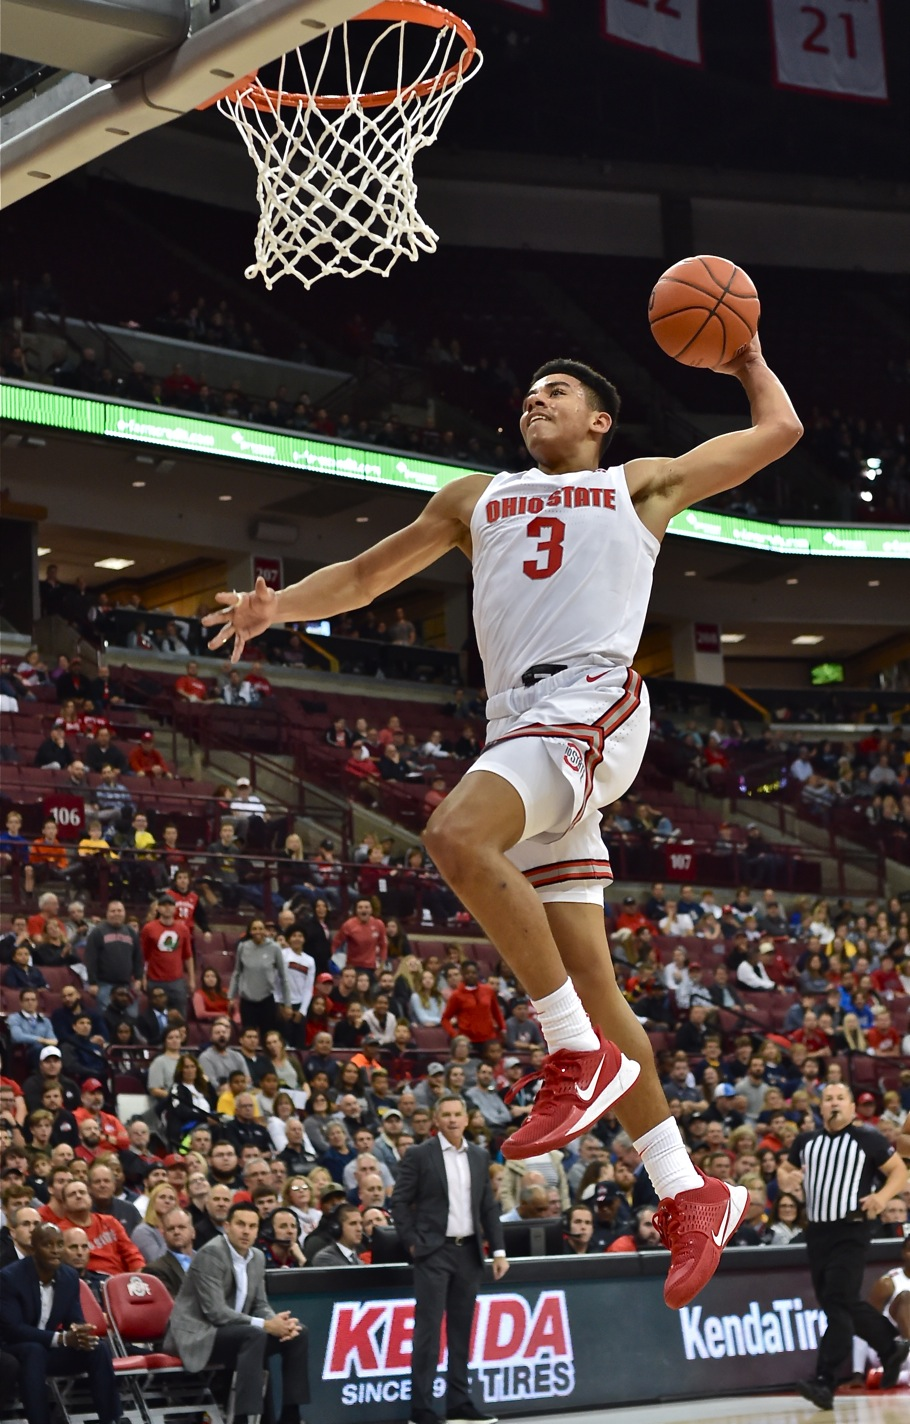 Ohio State Basketball: New Faces Should Bring Lots of Smiles